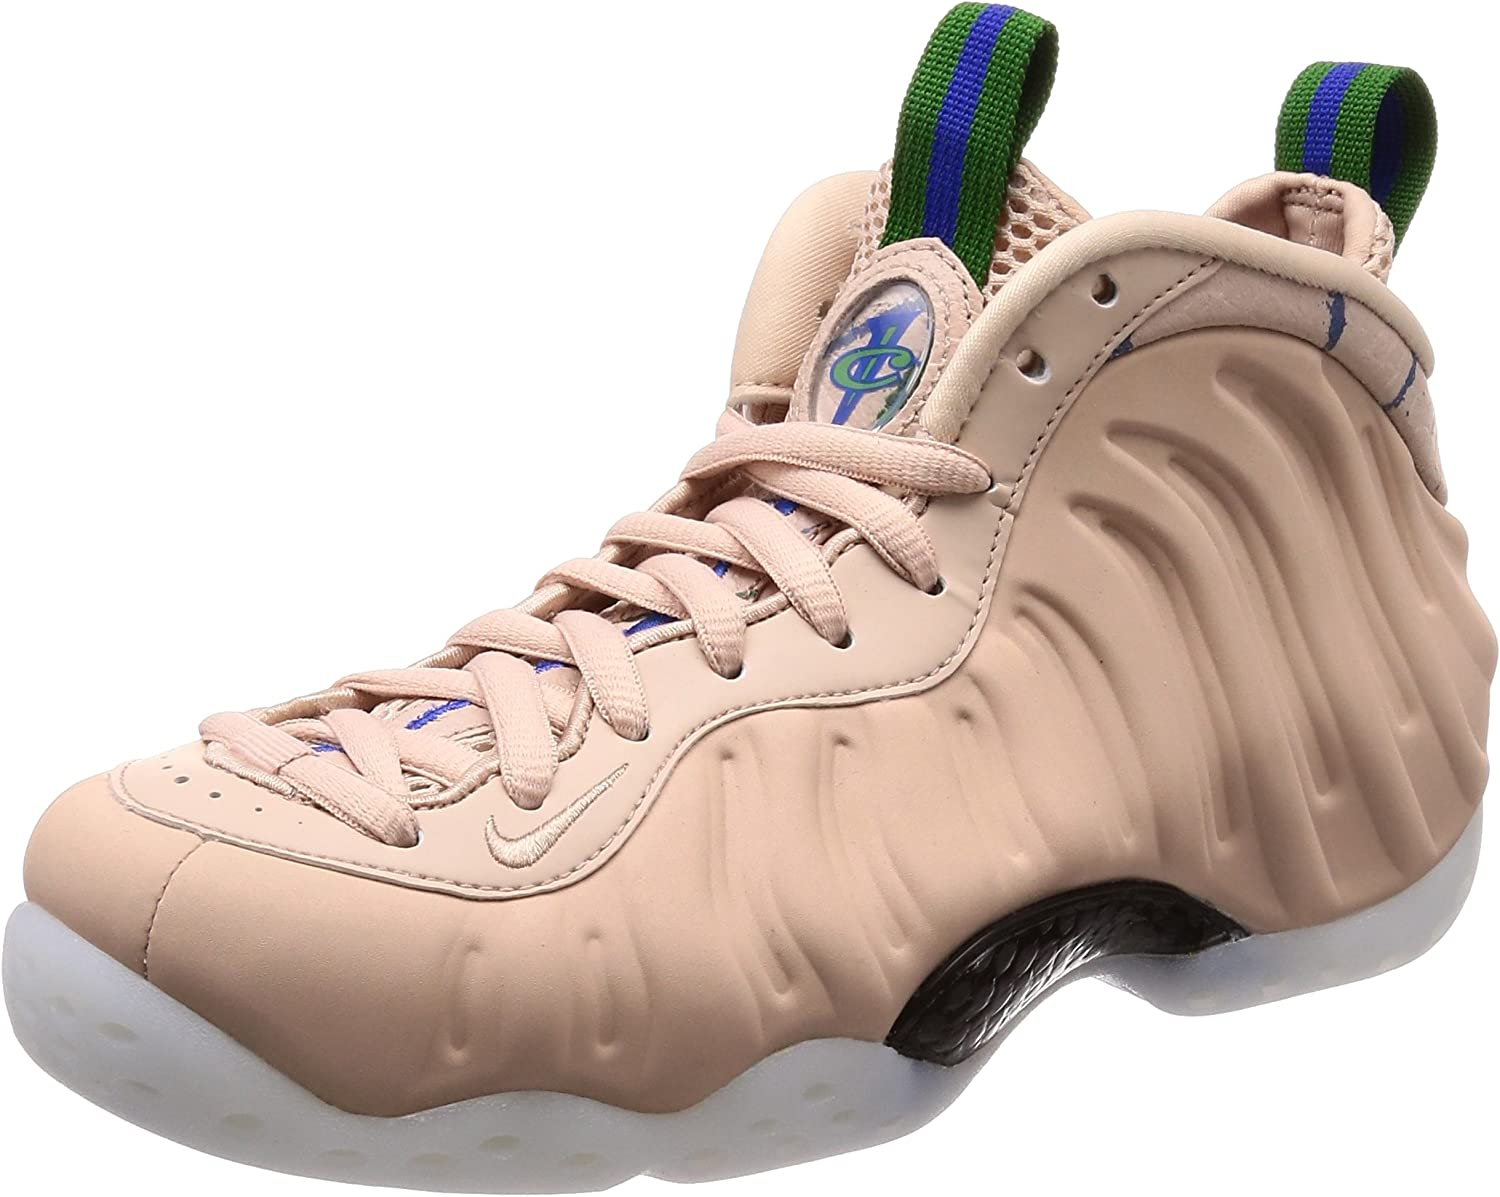 NIKE ZOOM AIR FOAMPOSITE ONE PEARLIZED PINK ... eBay